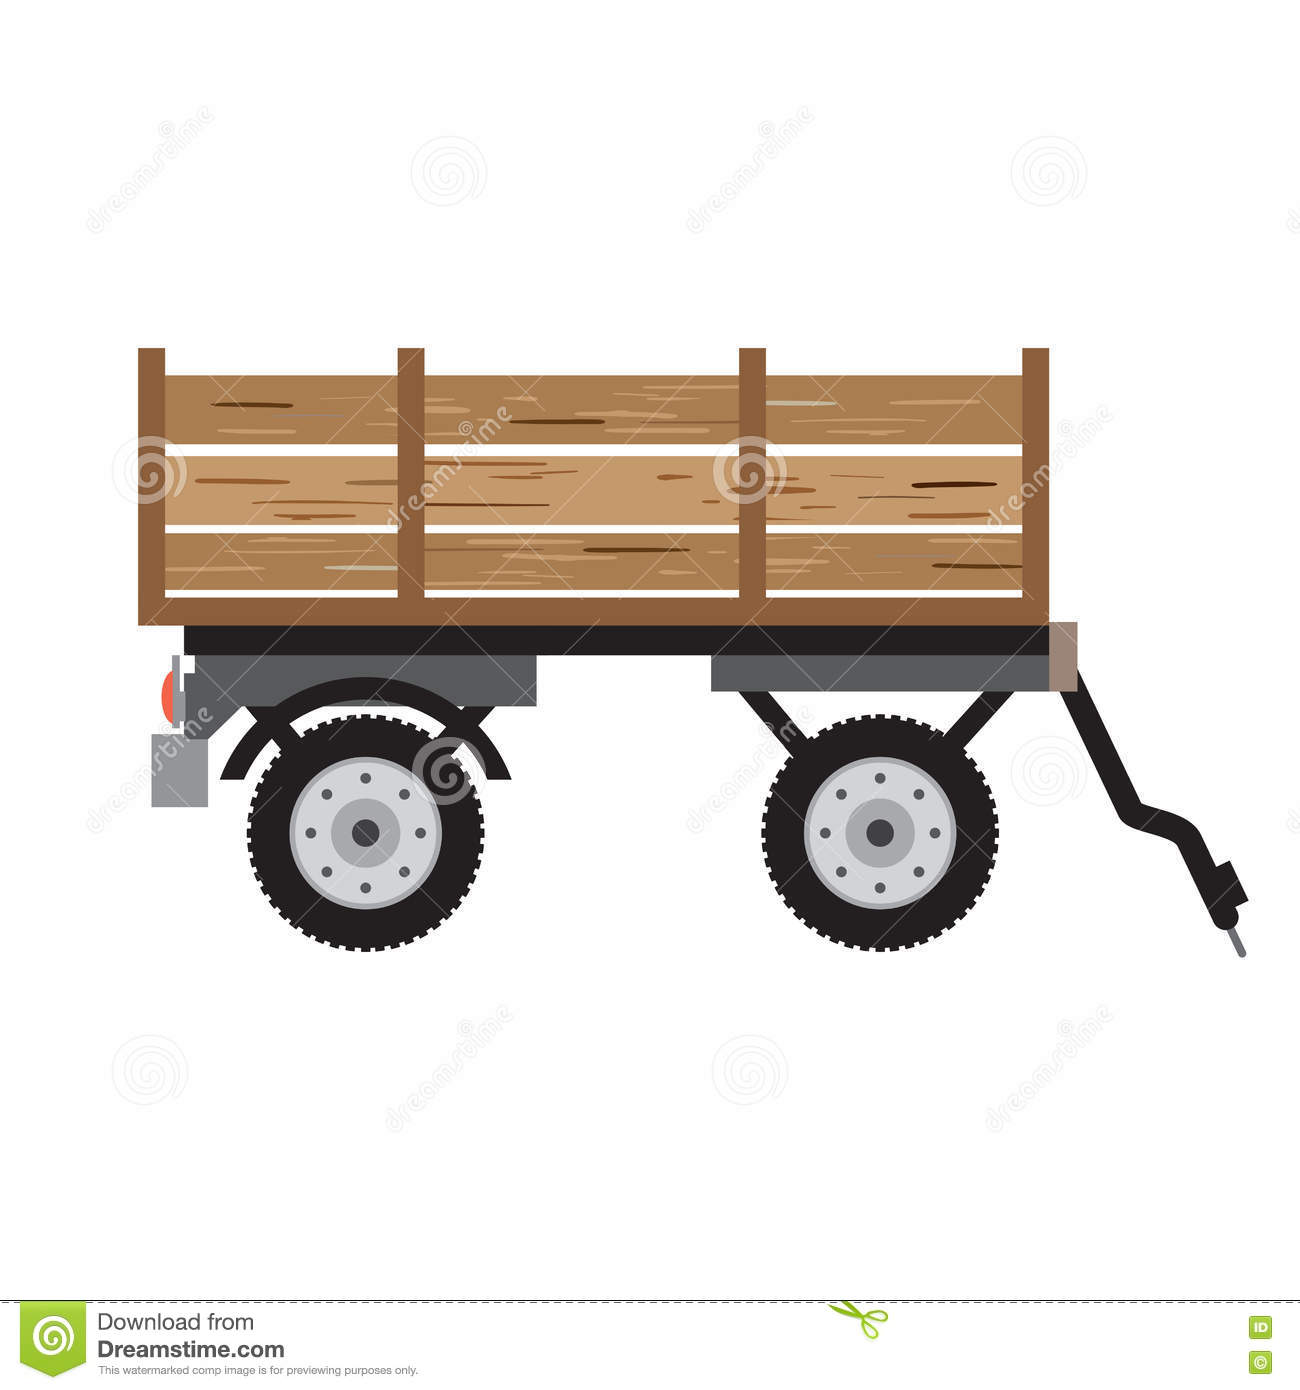 Tractor Trailer For Bulk Materials. Agricultural Machinery Rural.